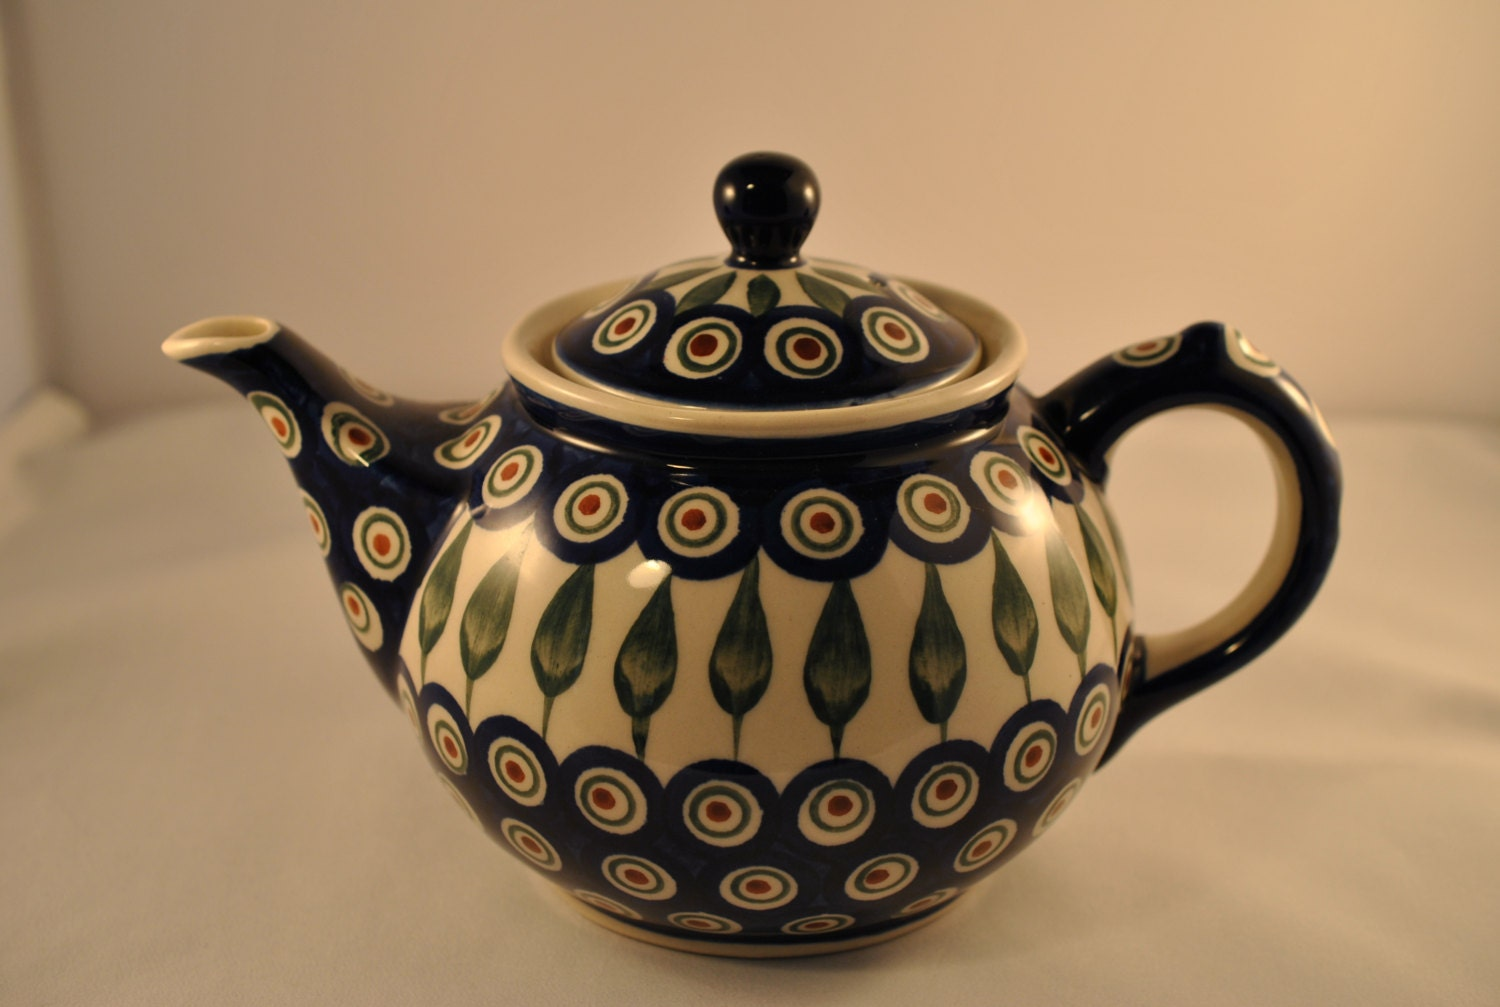 Polish Ceramic Teapot Boleslawiec Pottery Hand Made In